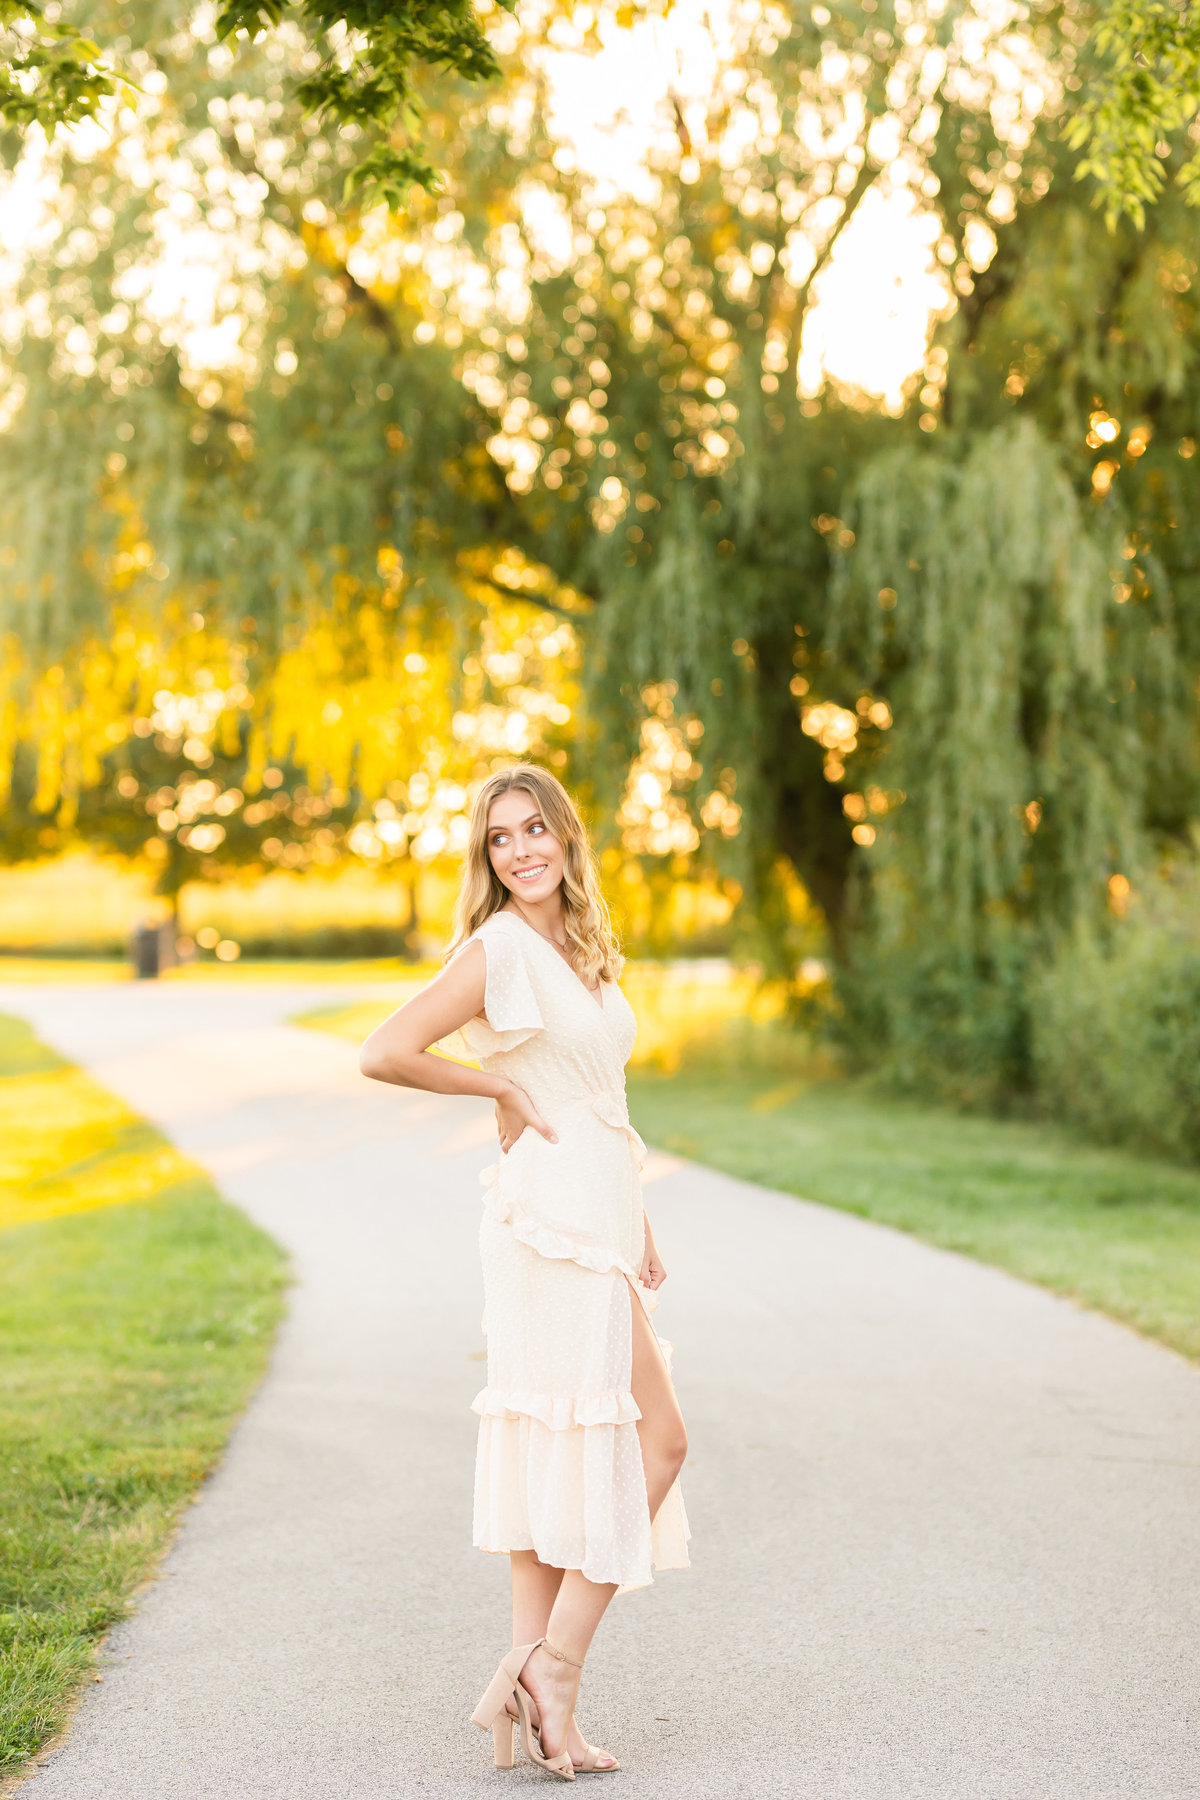 Kankakee County Senior Photographer-Bourbonnais, IL Senior Photographer 148769